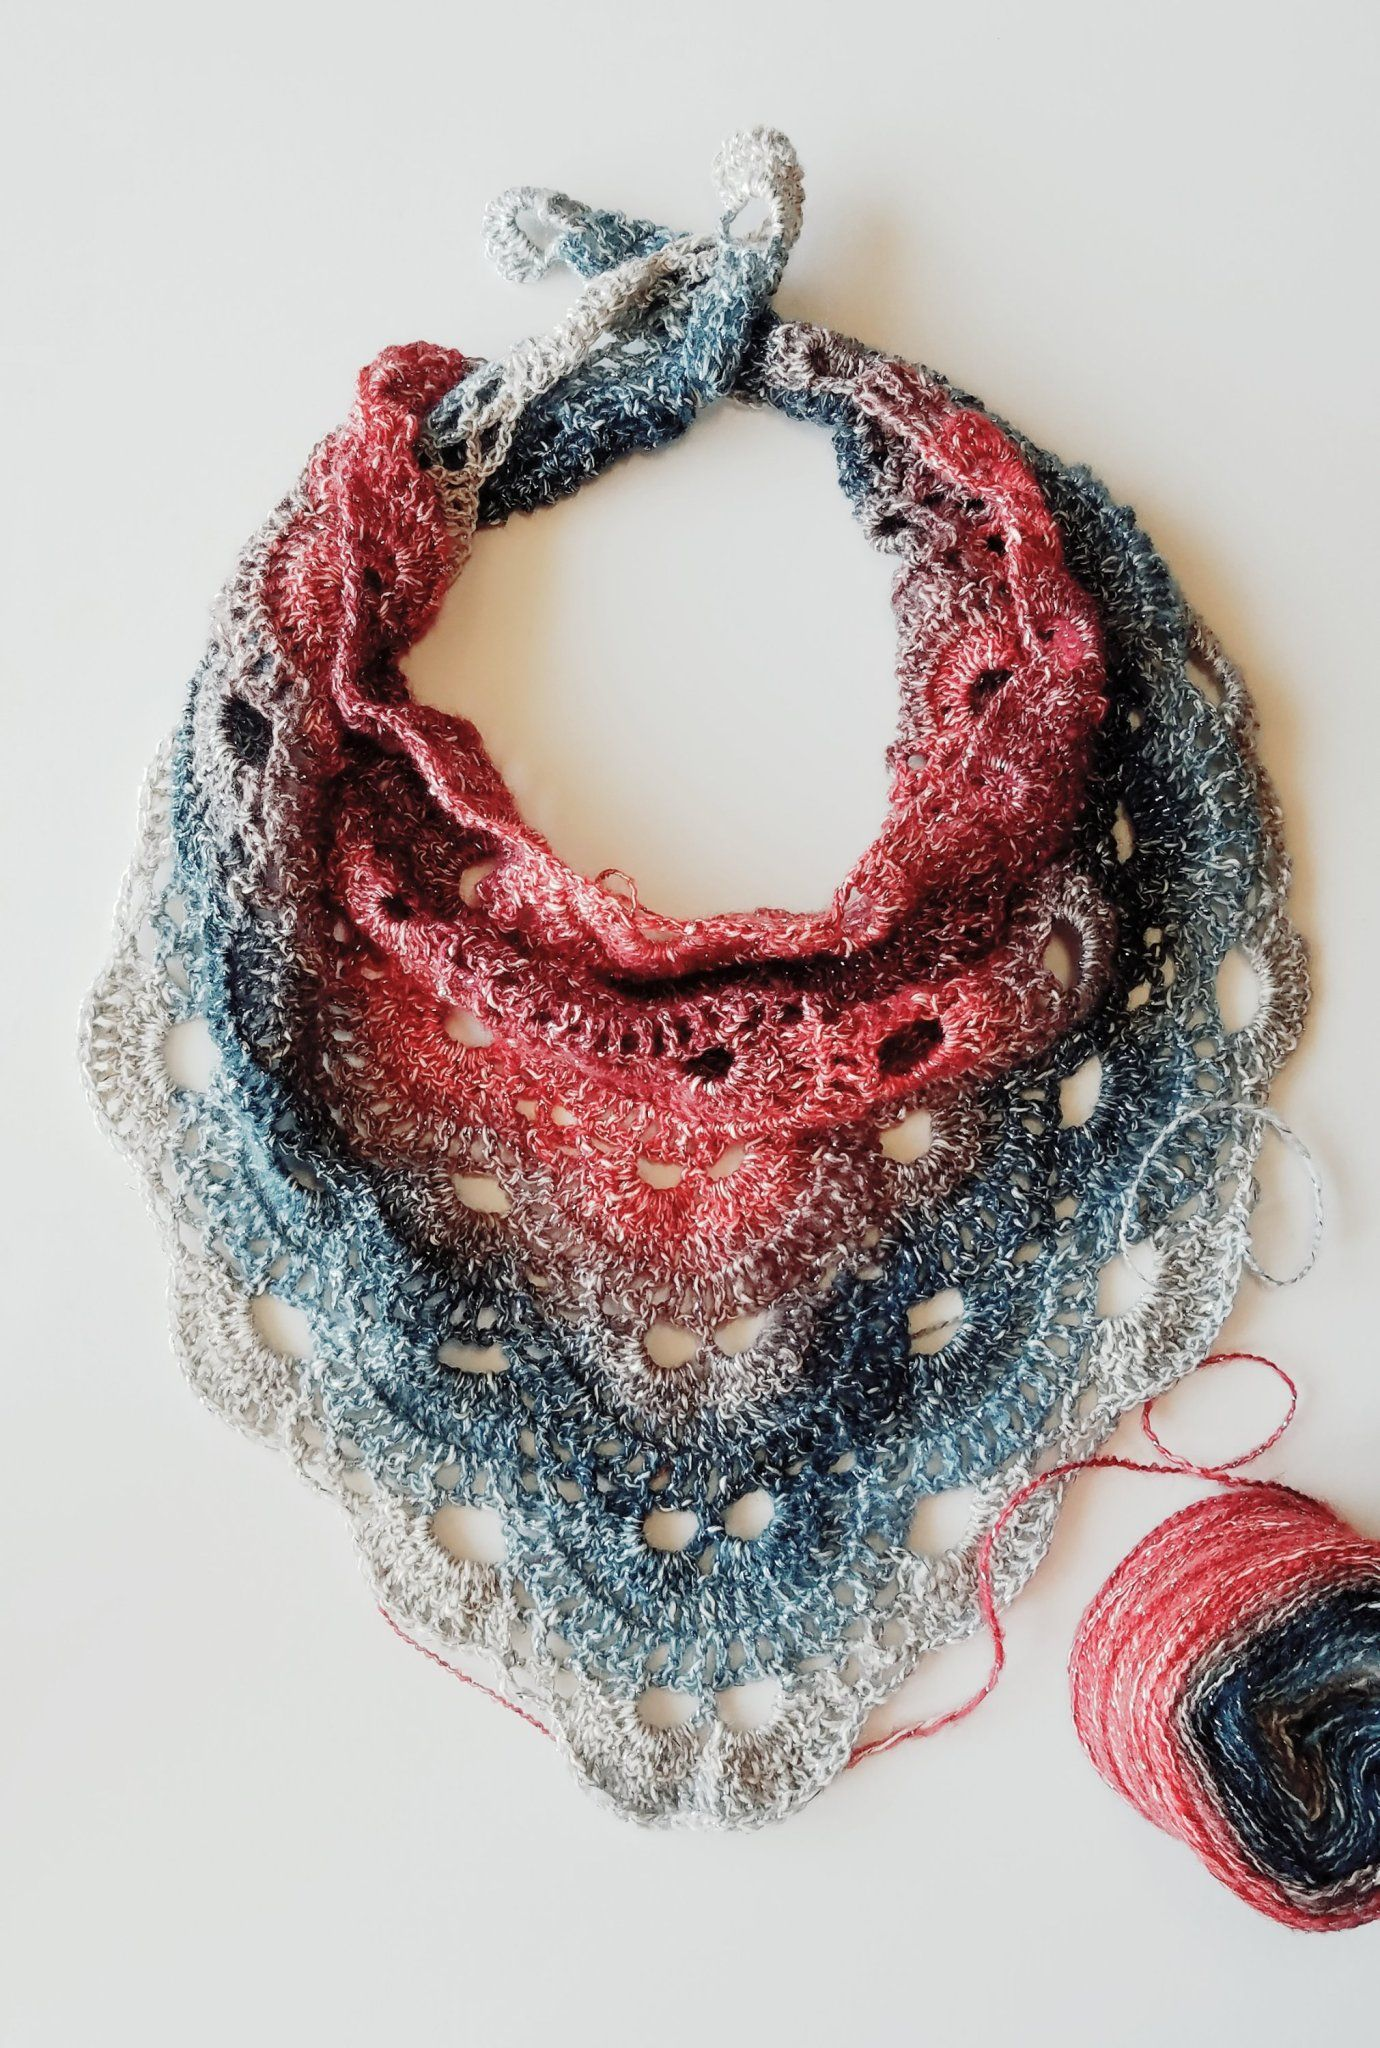 How to crochet Virus Scarf #shawlcrochetpattern